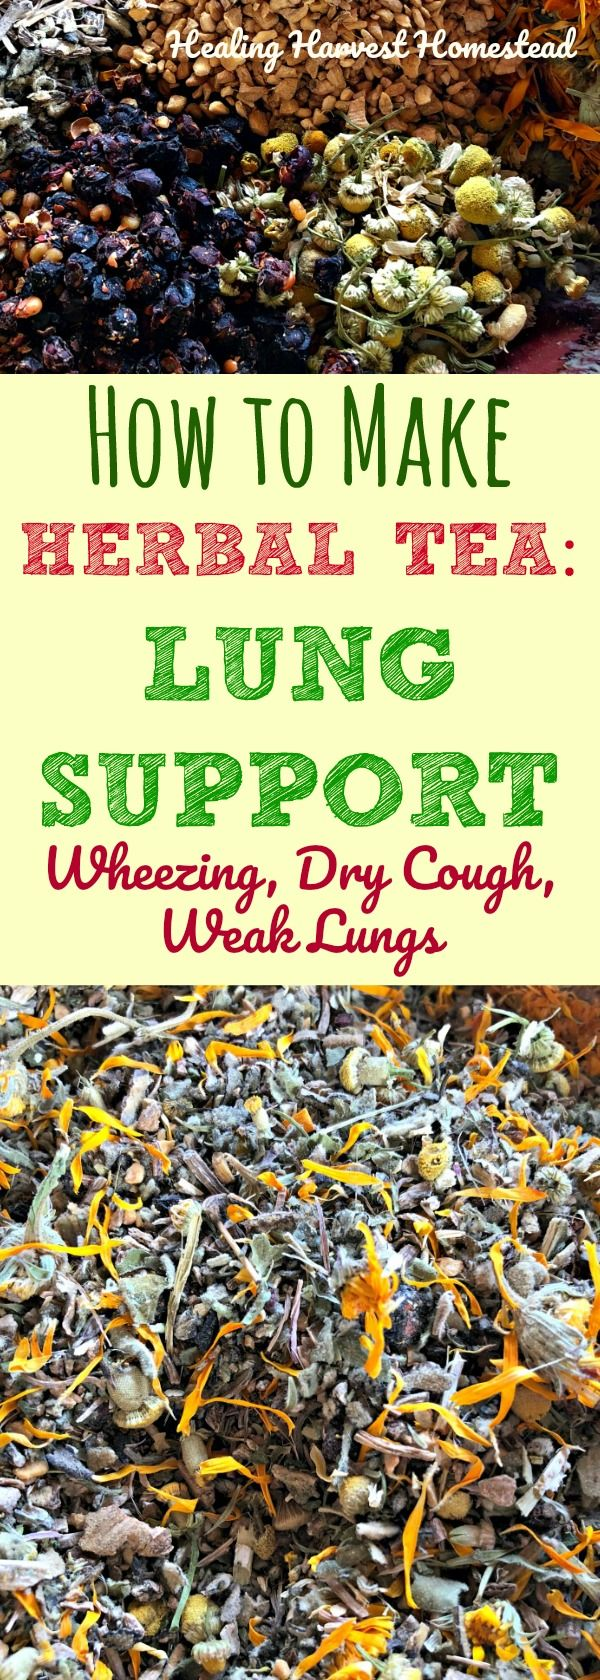 Here is a recipe for an herbal tea to support your lungs. If you have asthma symptoms with slight wheezing and dry cough or just weak lungs due to illness, including that cough that just won't leave....this tea is great for use as a daily tonic tea for chronic issues or even with acute problems. Enjoy this herbal lung support tea blend recipe!